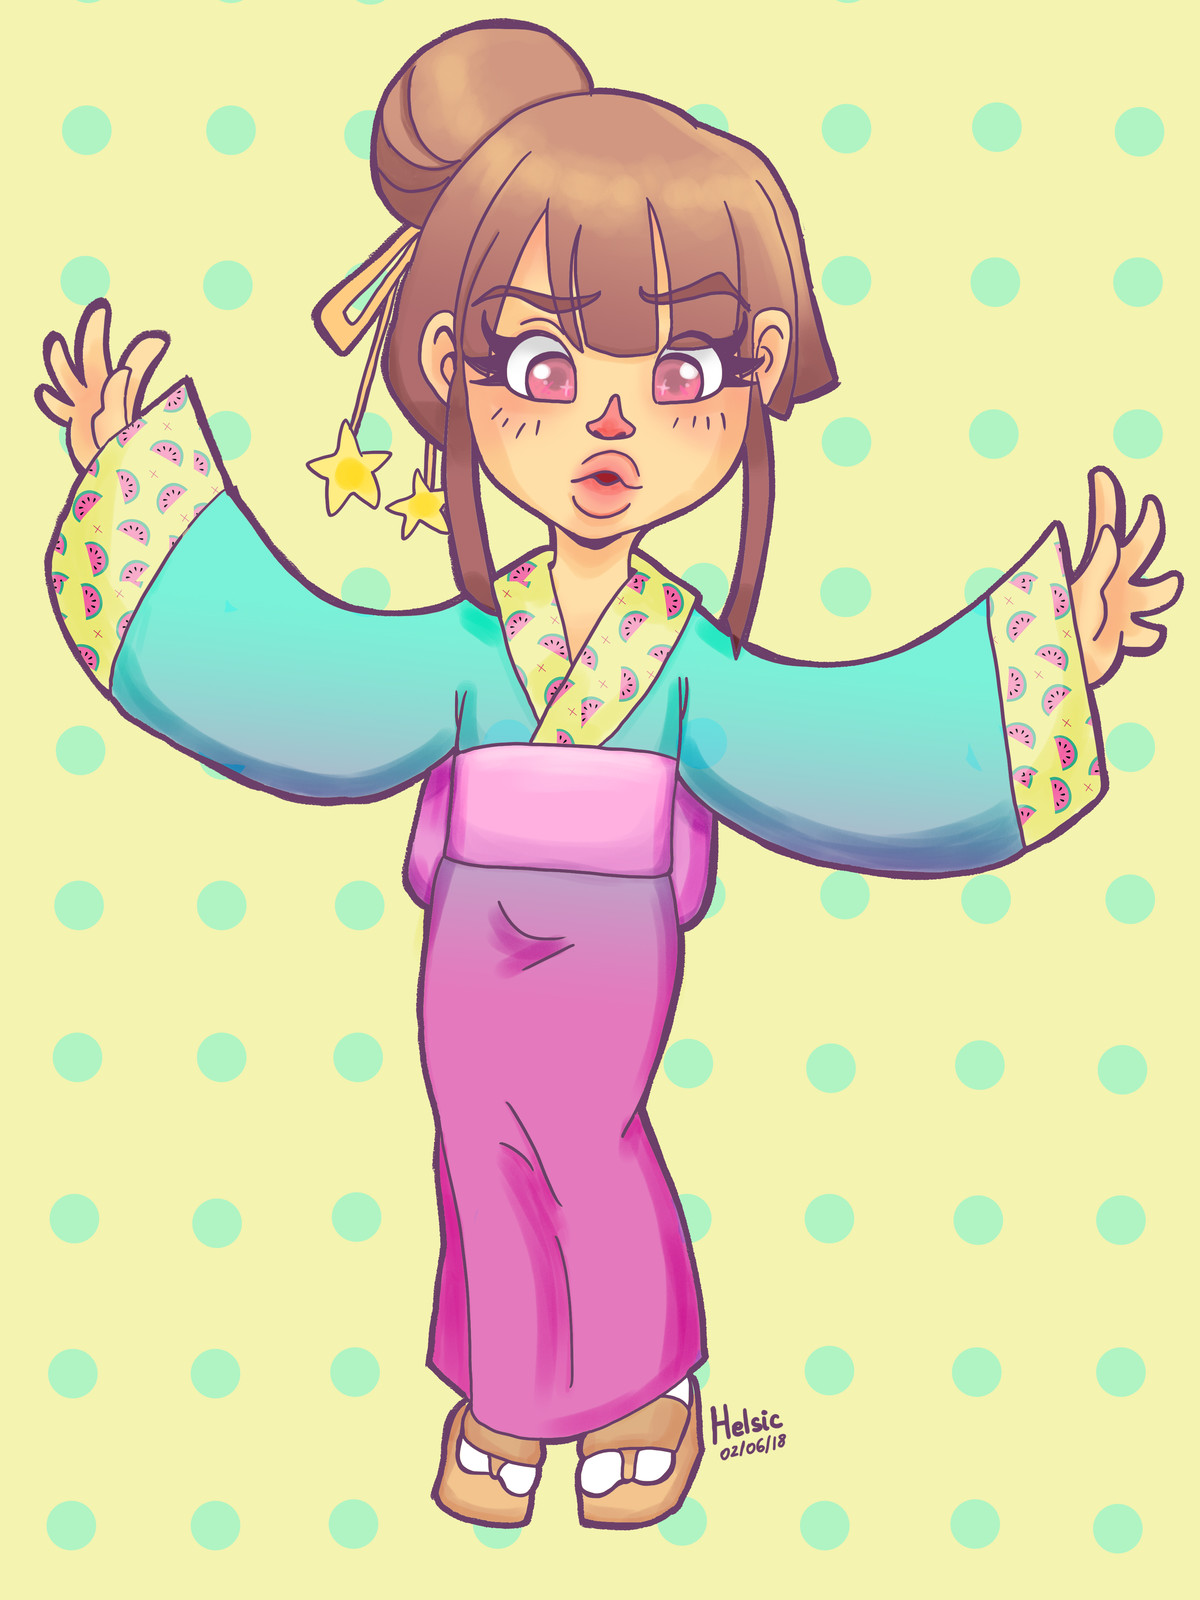 I wanted to draw something extremely cute, girly and using pastel hues of pink and blue, so this adorable Aiko wearing a kimono is the result ^^